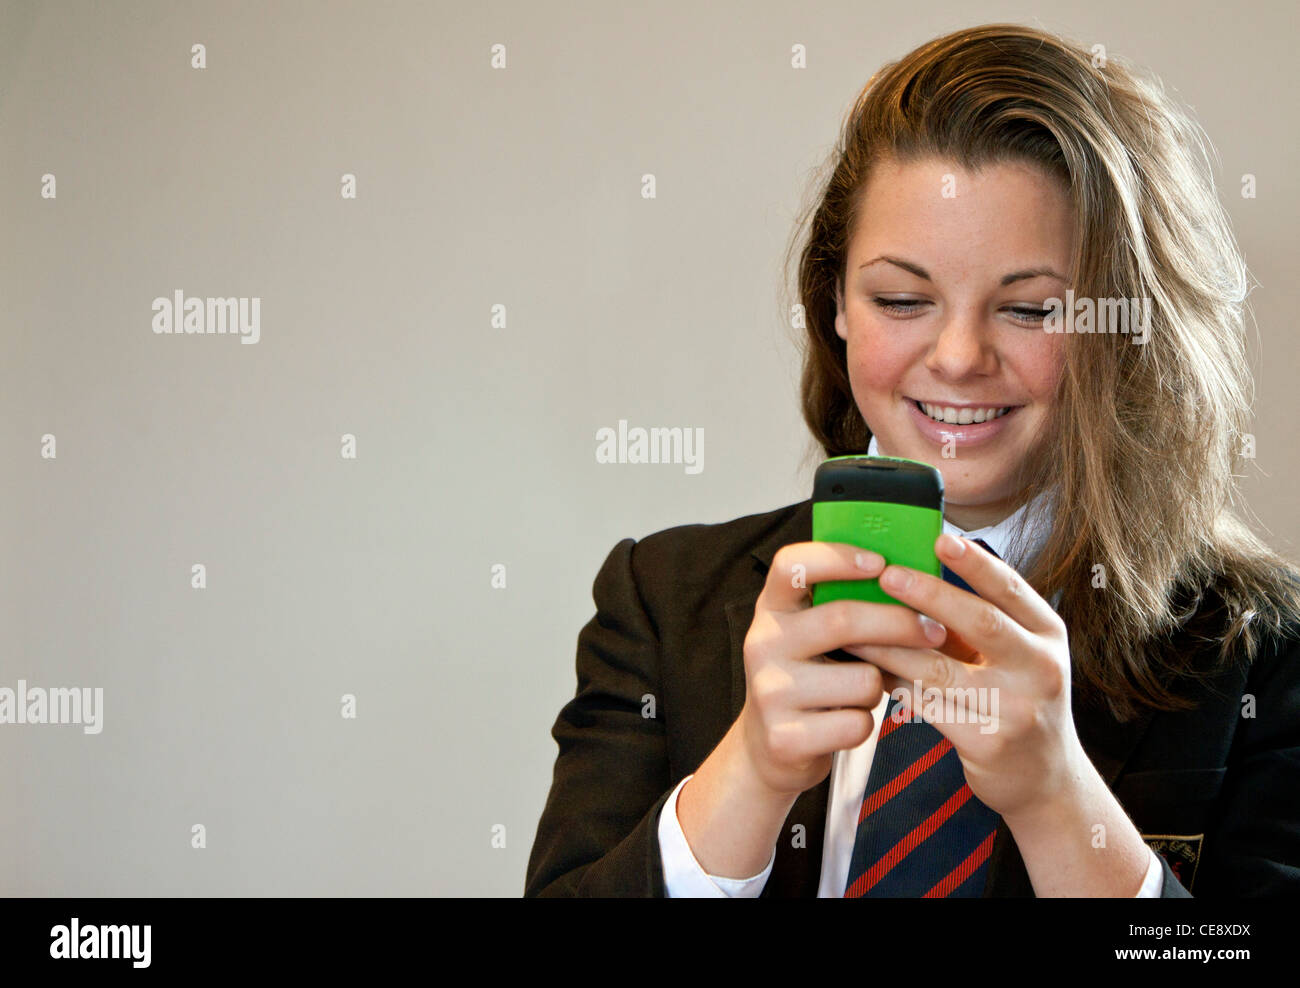 MODEL RELEASED. Teenager texting. - Stock Image